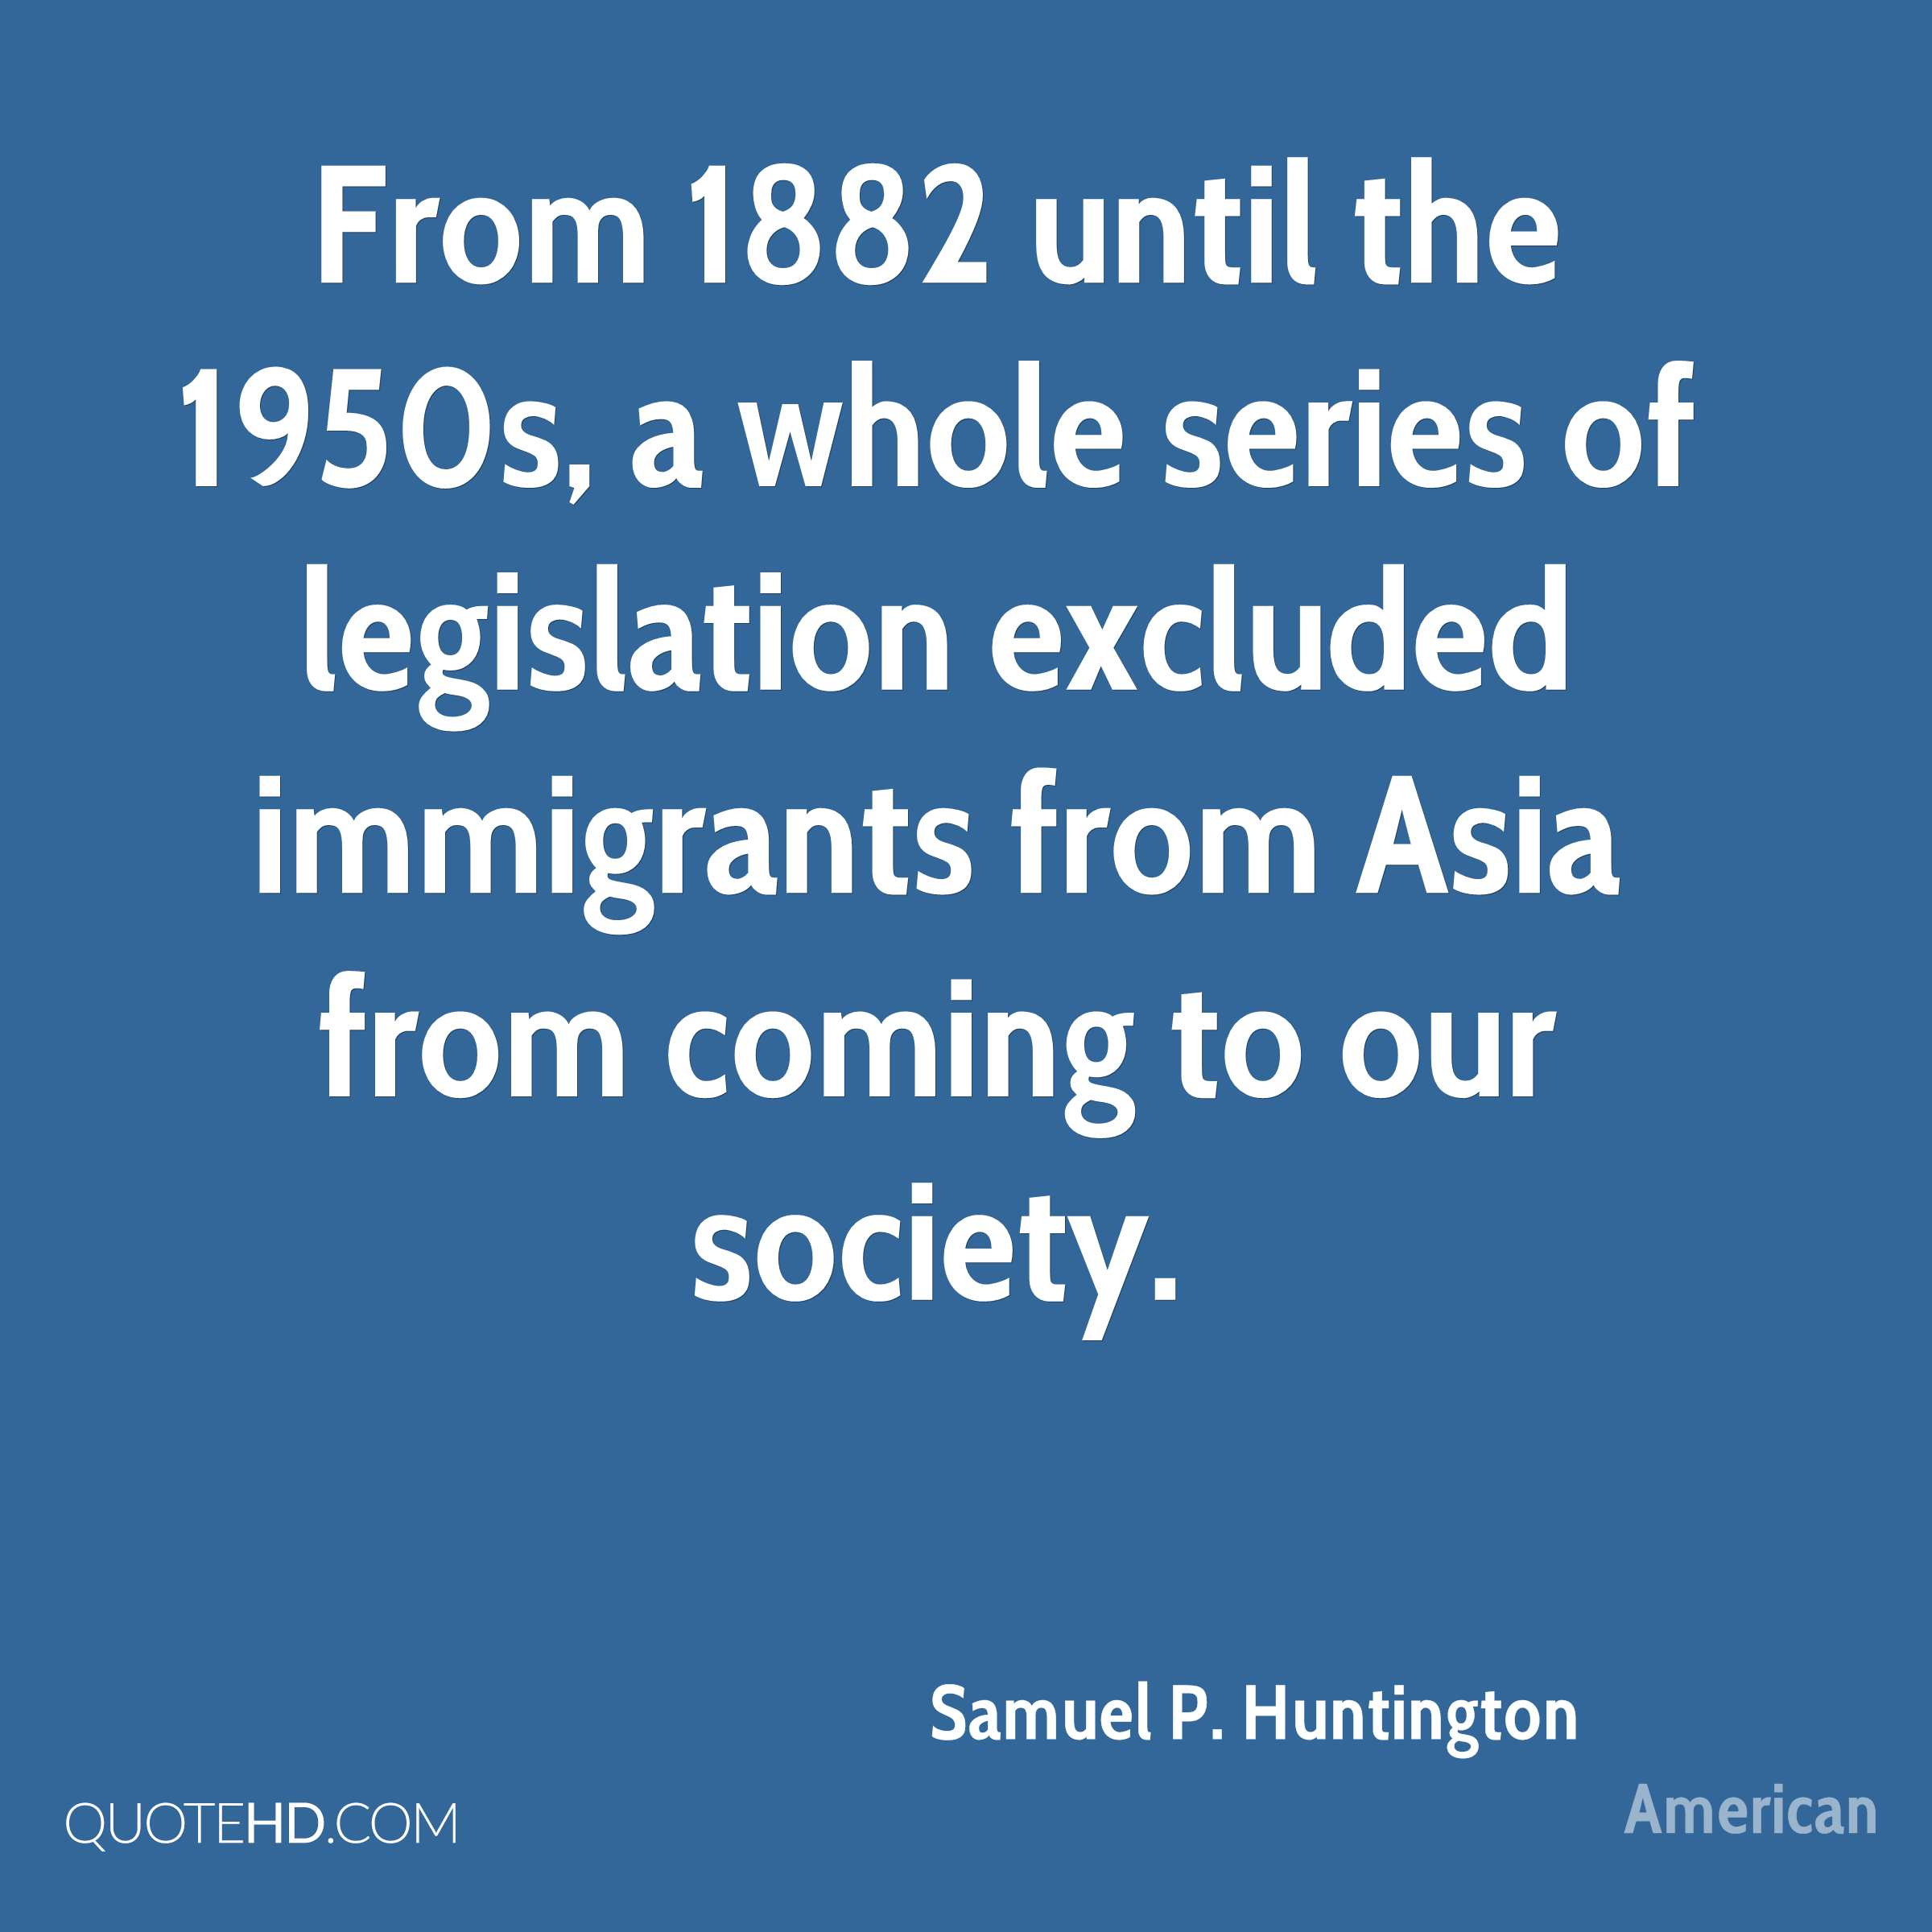 From 1882 until the 1950s, a whole series of legislation excluded immigrants from Asia from coming to our society.